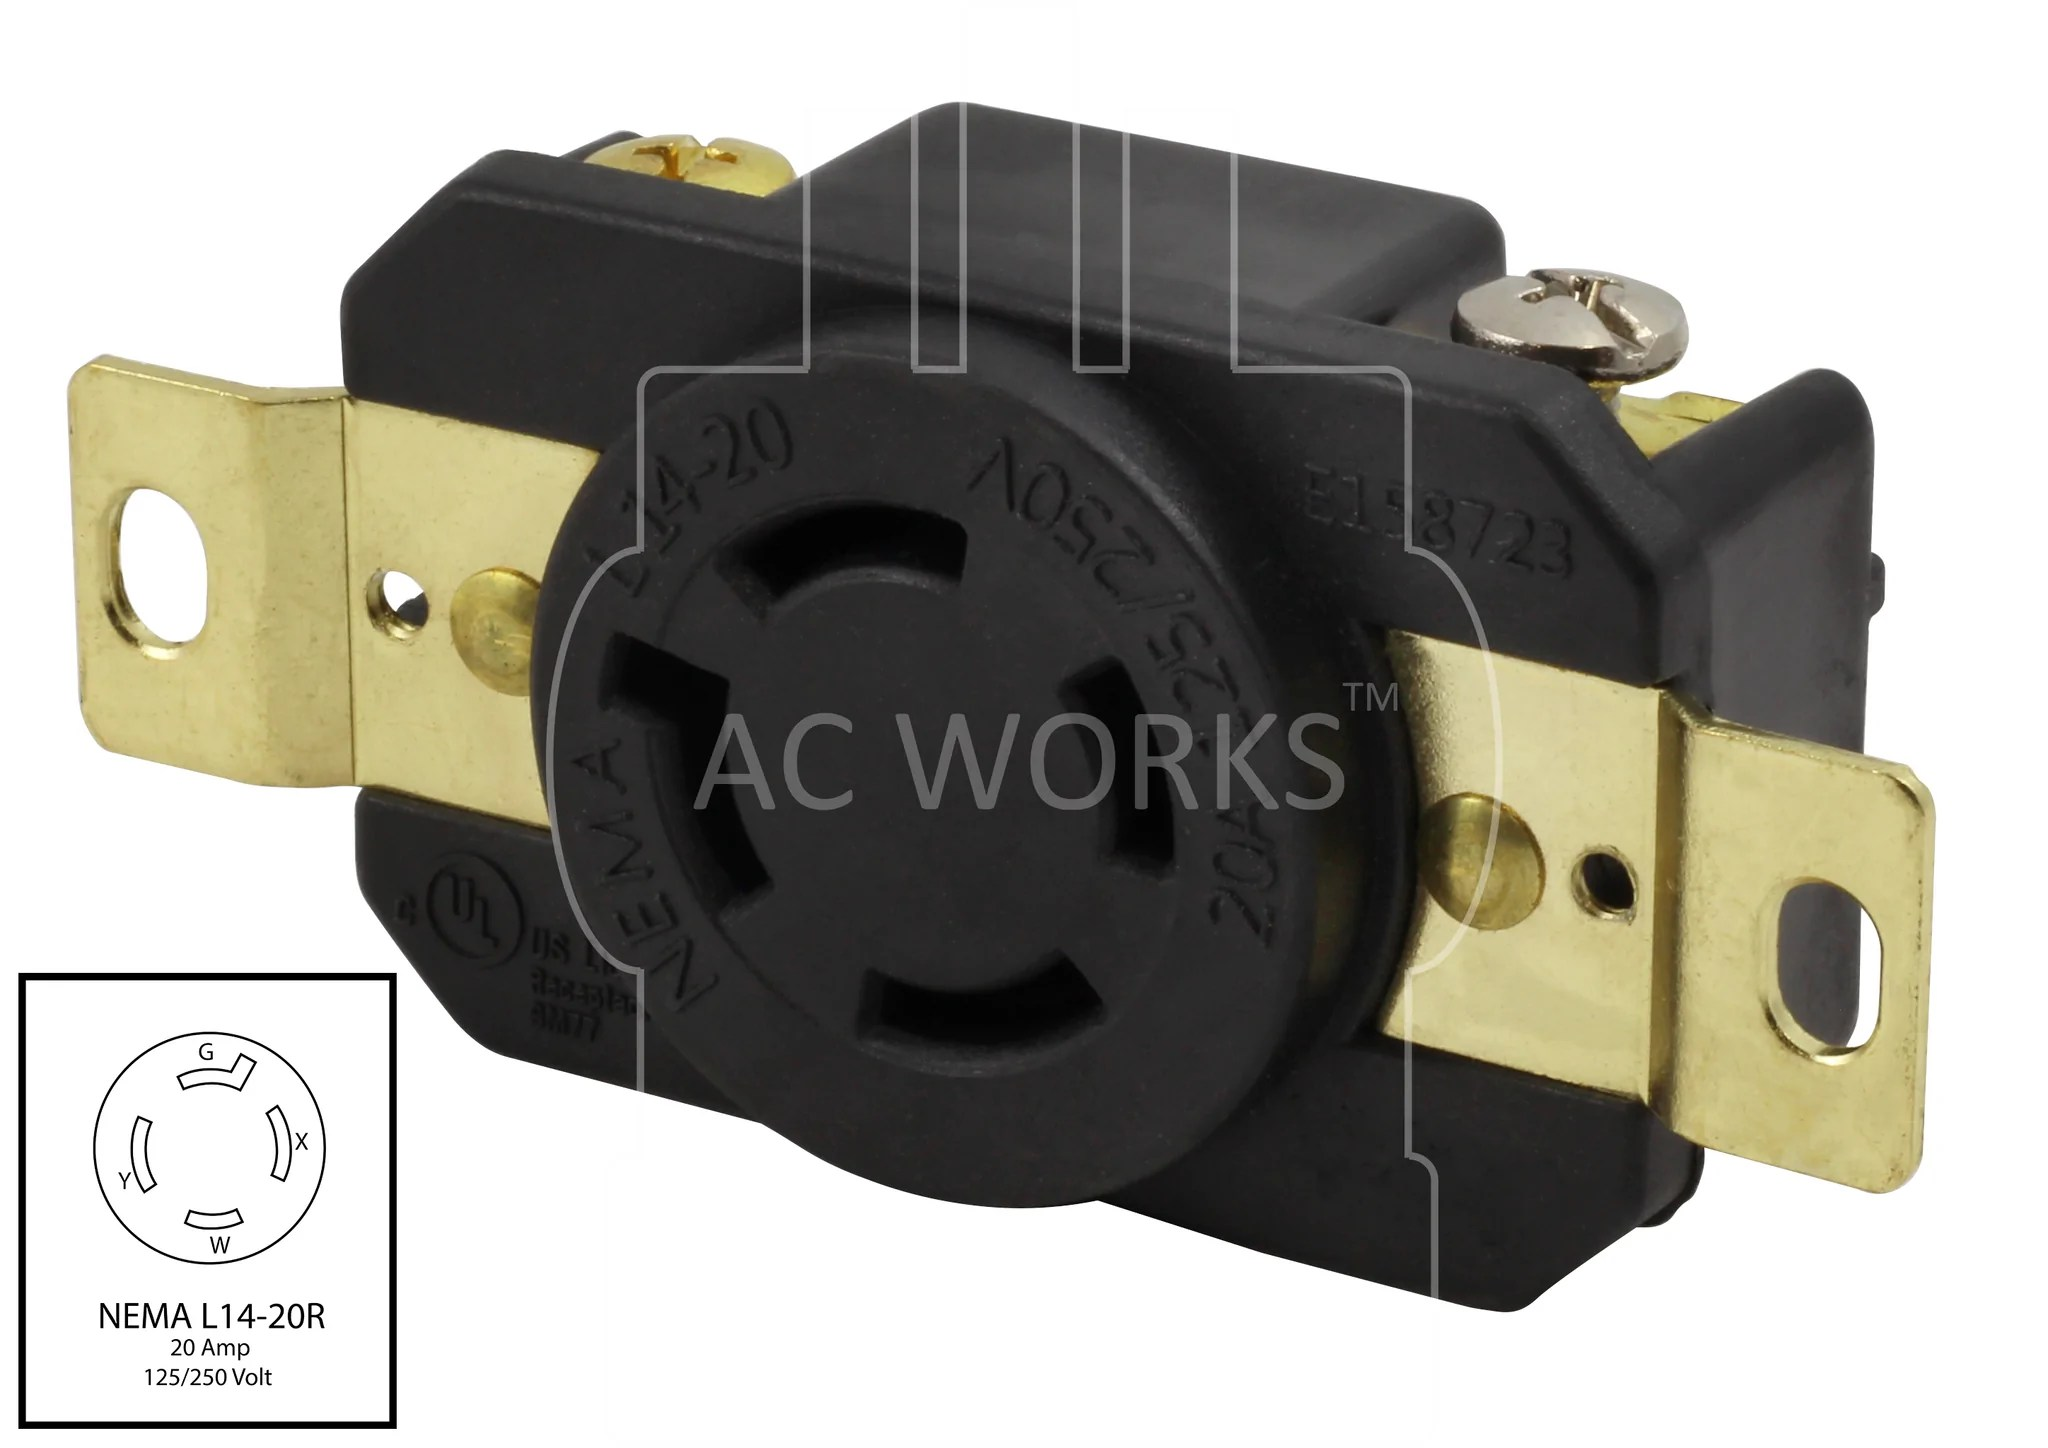 small resolution of  ac works ac connectors flush mount receptacle nema l14 20r l1420